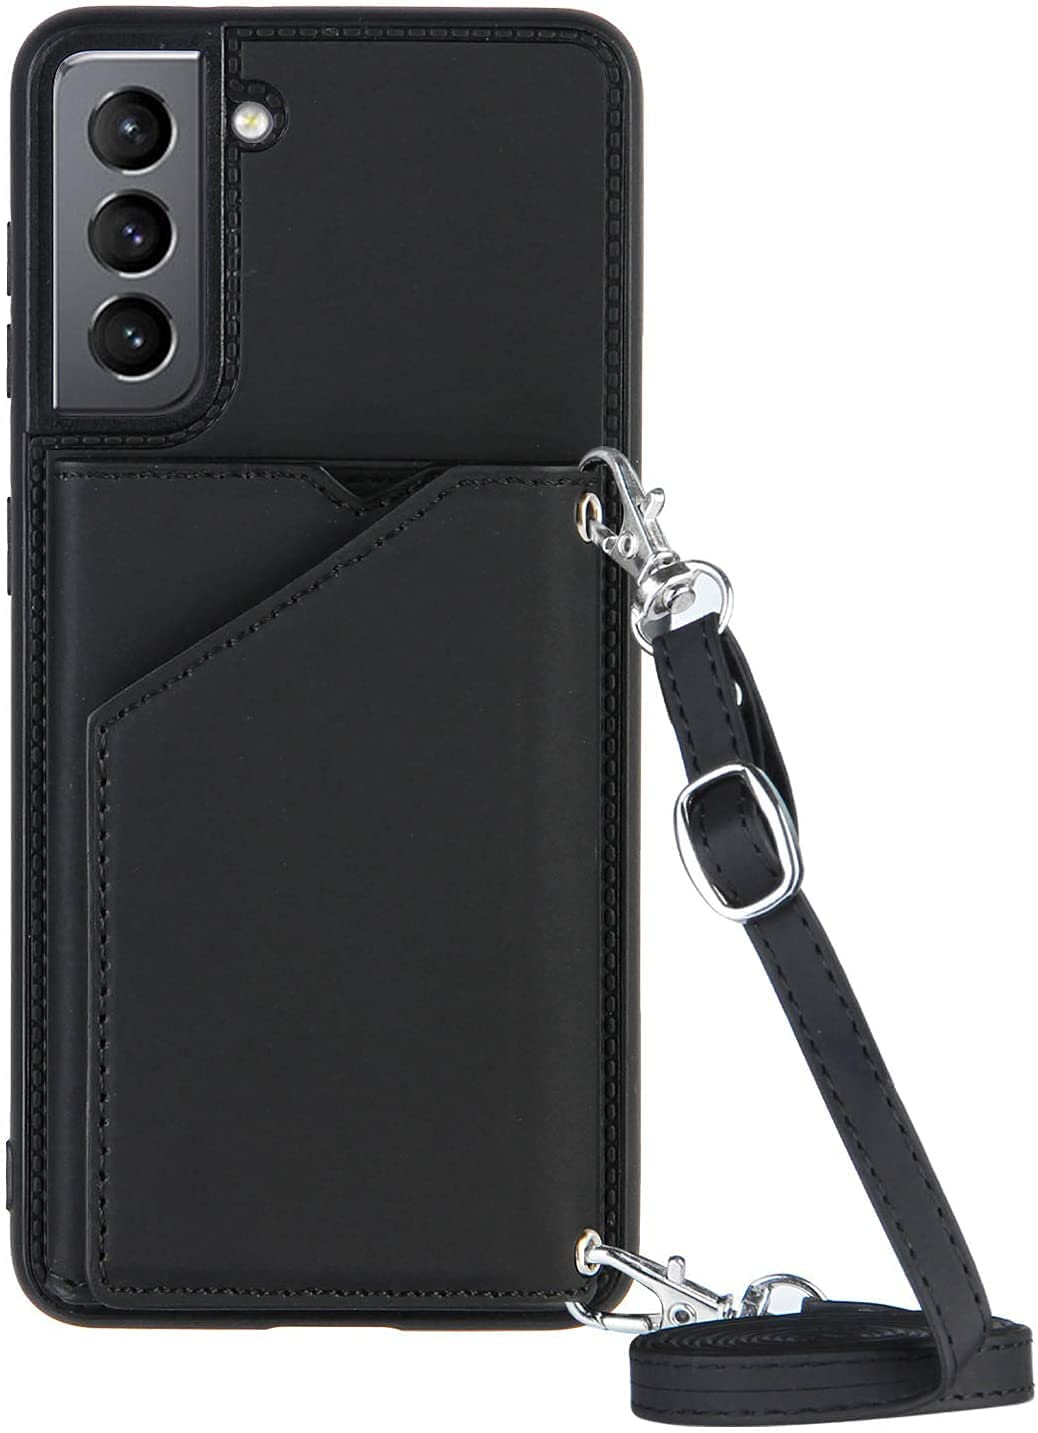 Galaxy S21 FE Wallet Case for Samsung S21 FE 5G Lanyard Case, Shockproof Stand Bumper Cover Cross-Body Girly Case, Shoulder Strap Shell (Black)